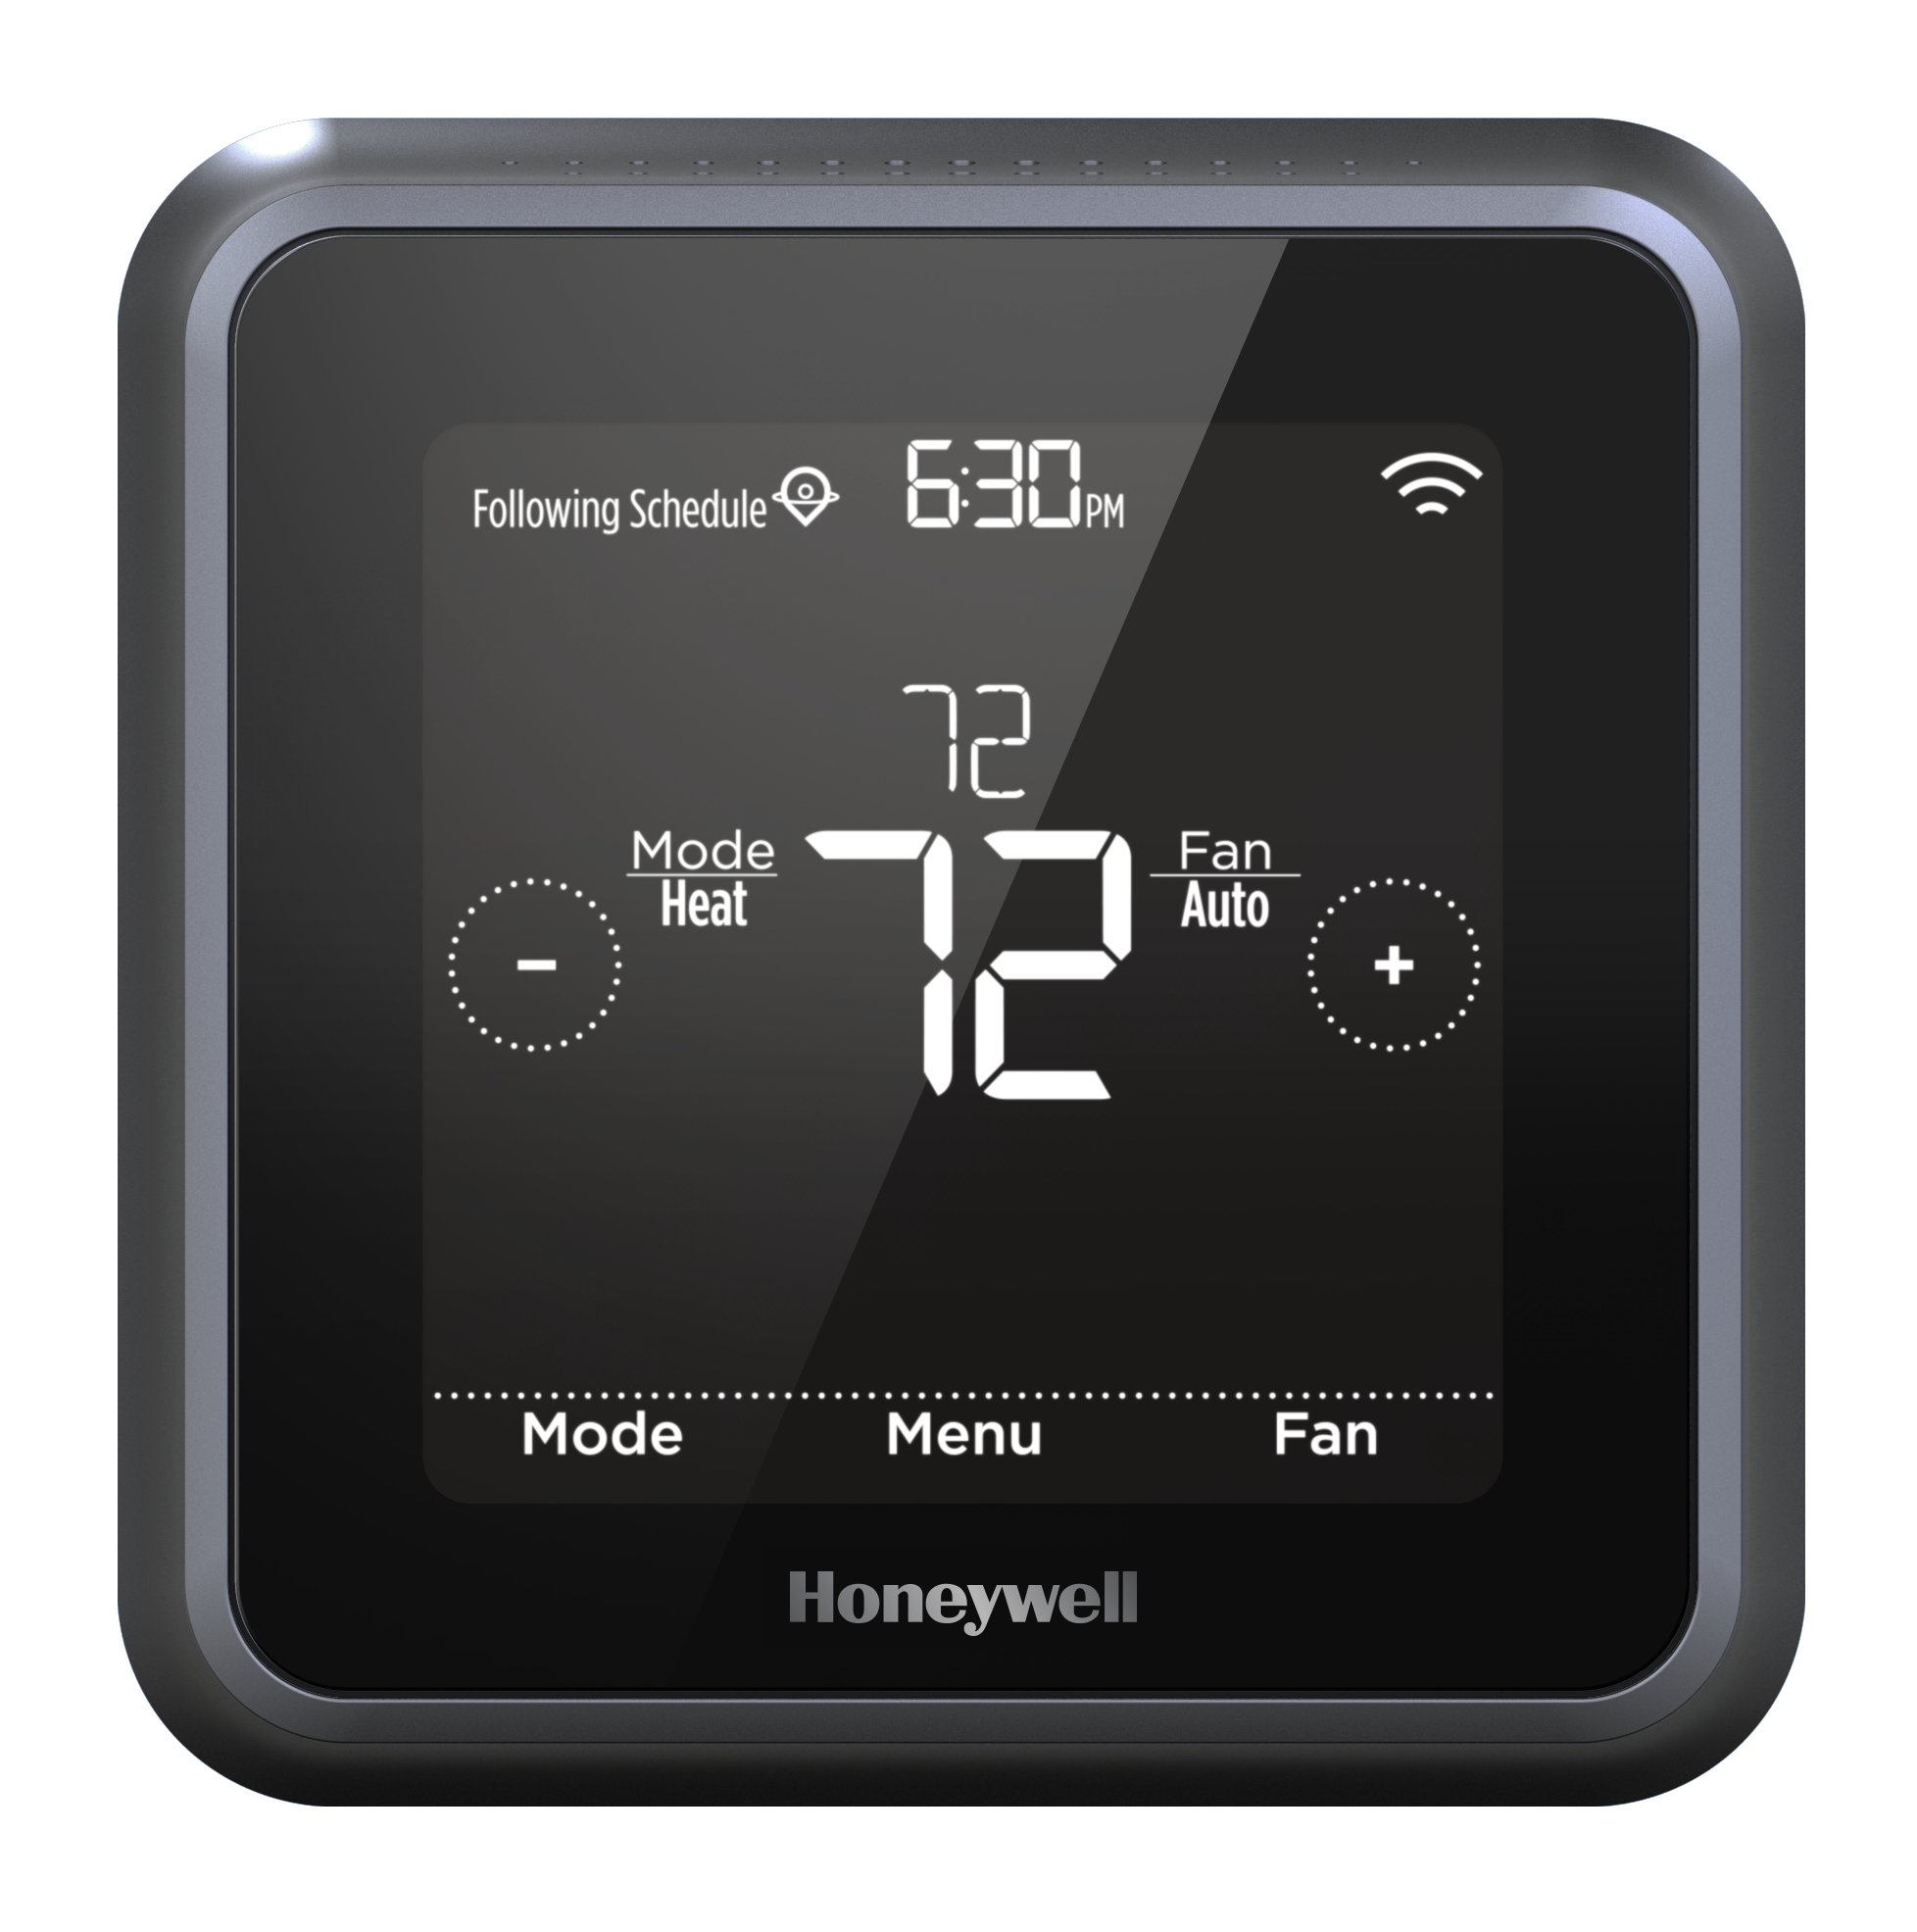 Honeywell Home product